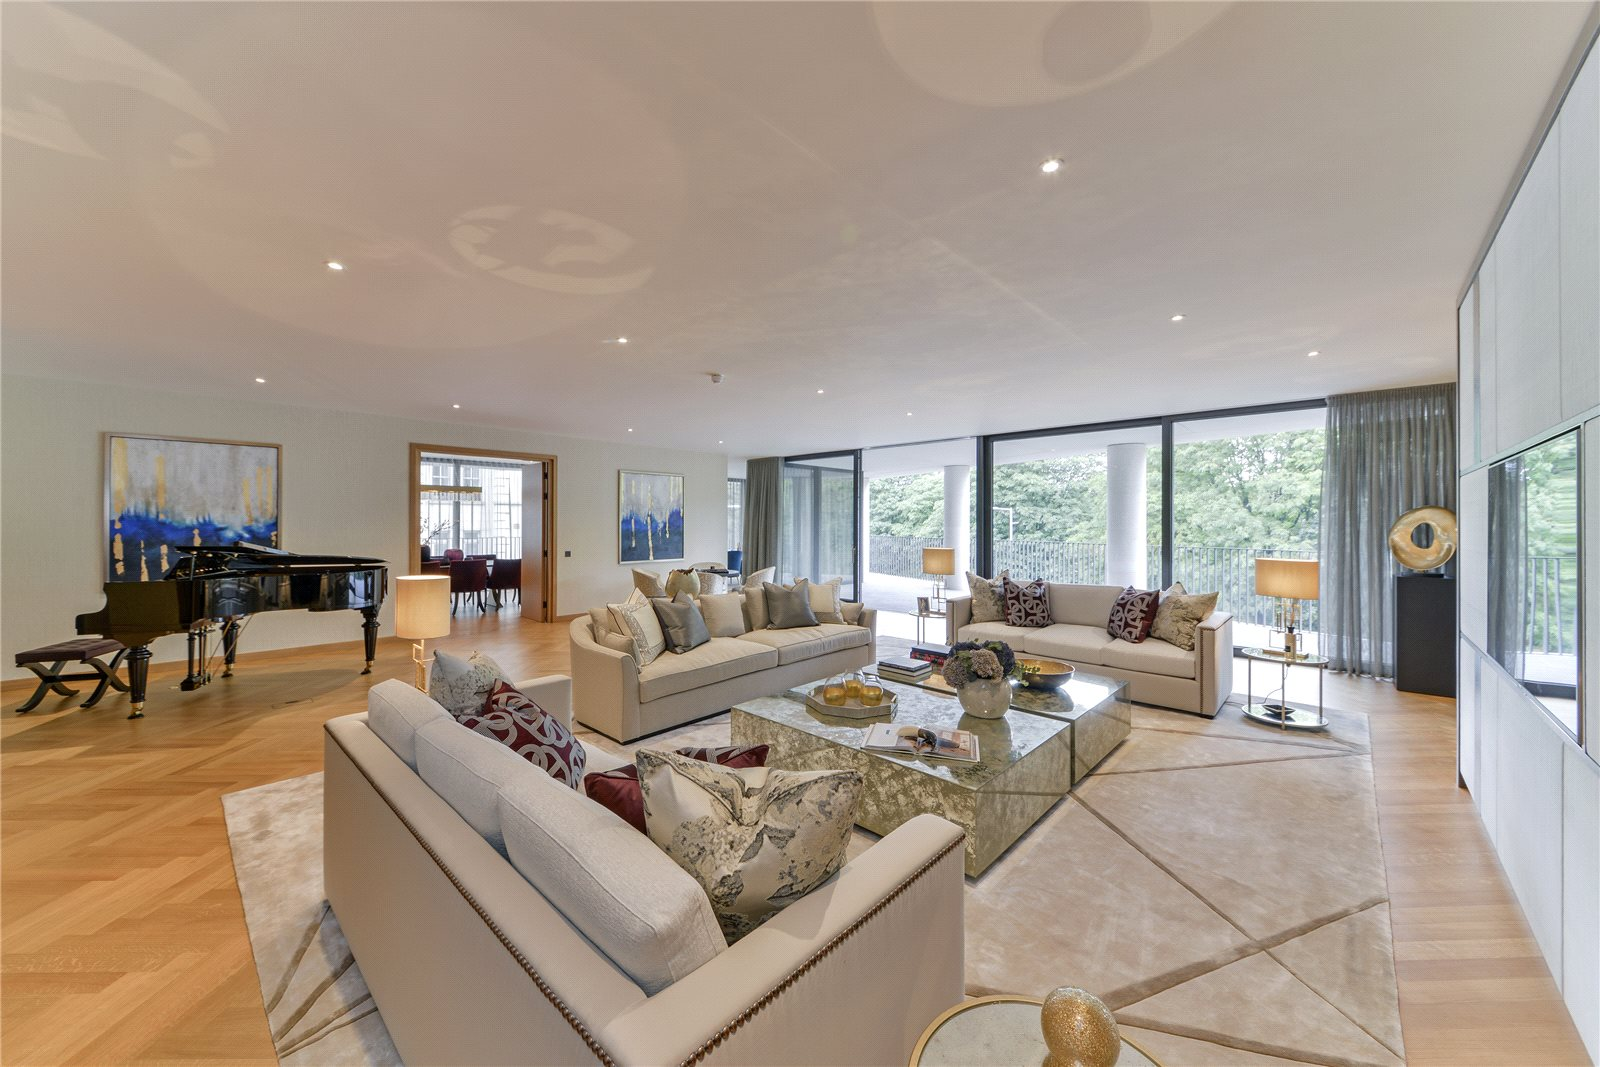 England Luxury Real Estate for Sale | Christie's ...